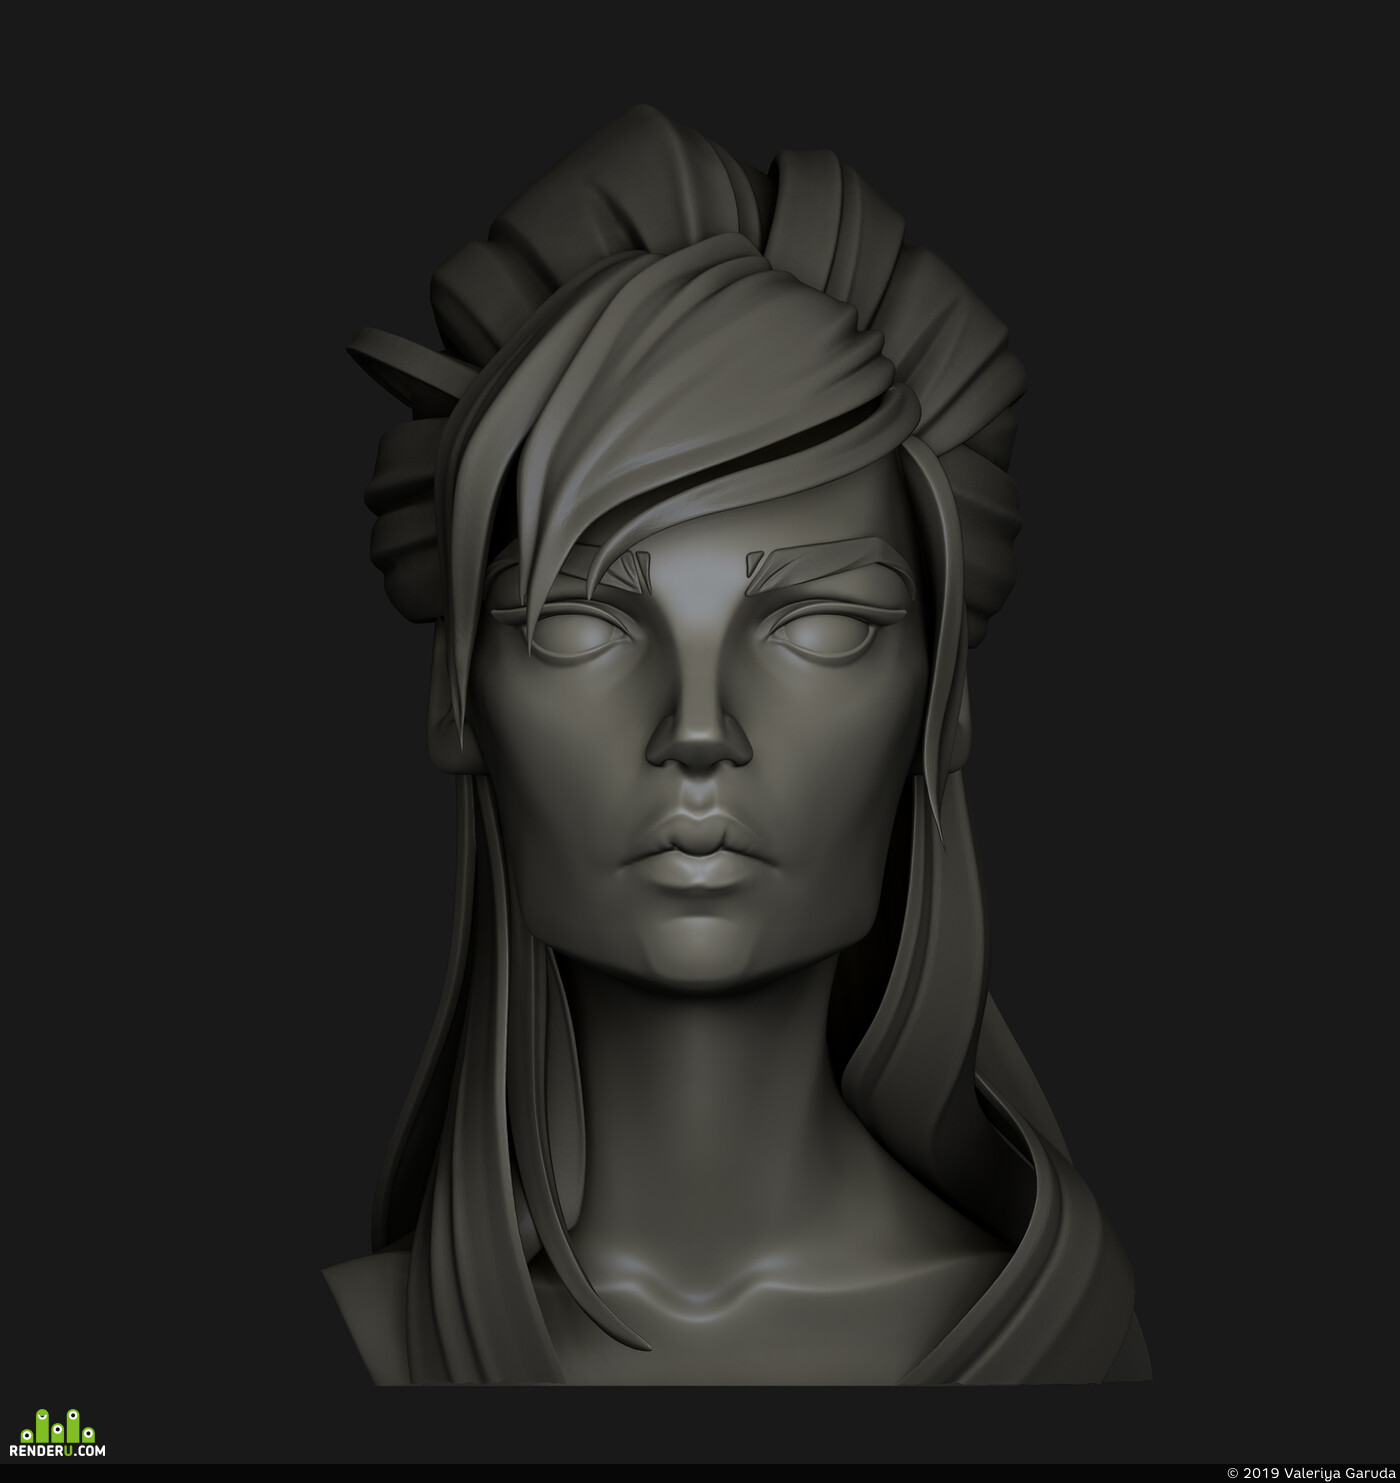 character, 3d character, stylized, woman, girl, female, bust, 3dbust, digital sculpture, zbrushsculpt